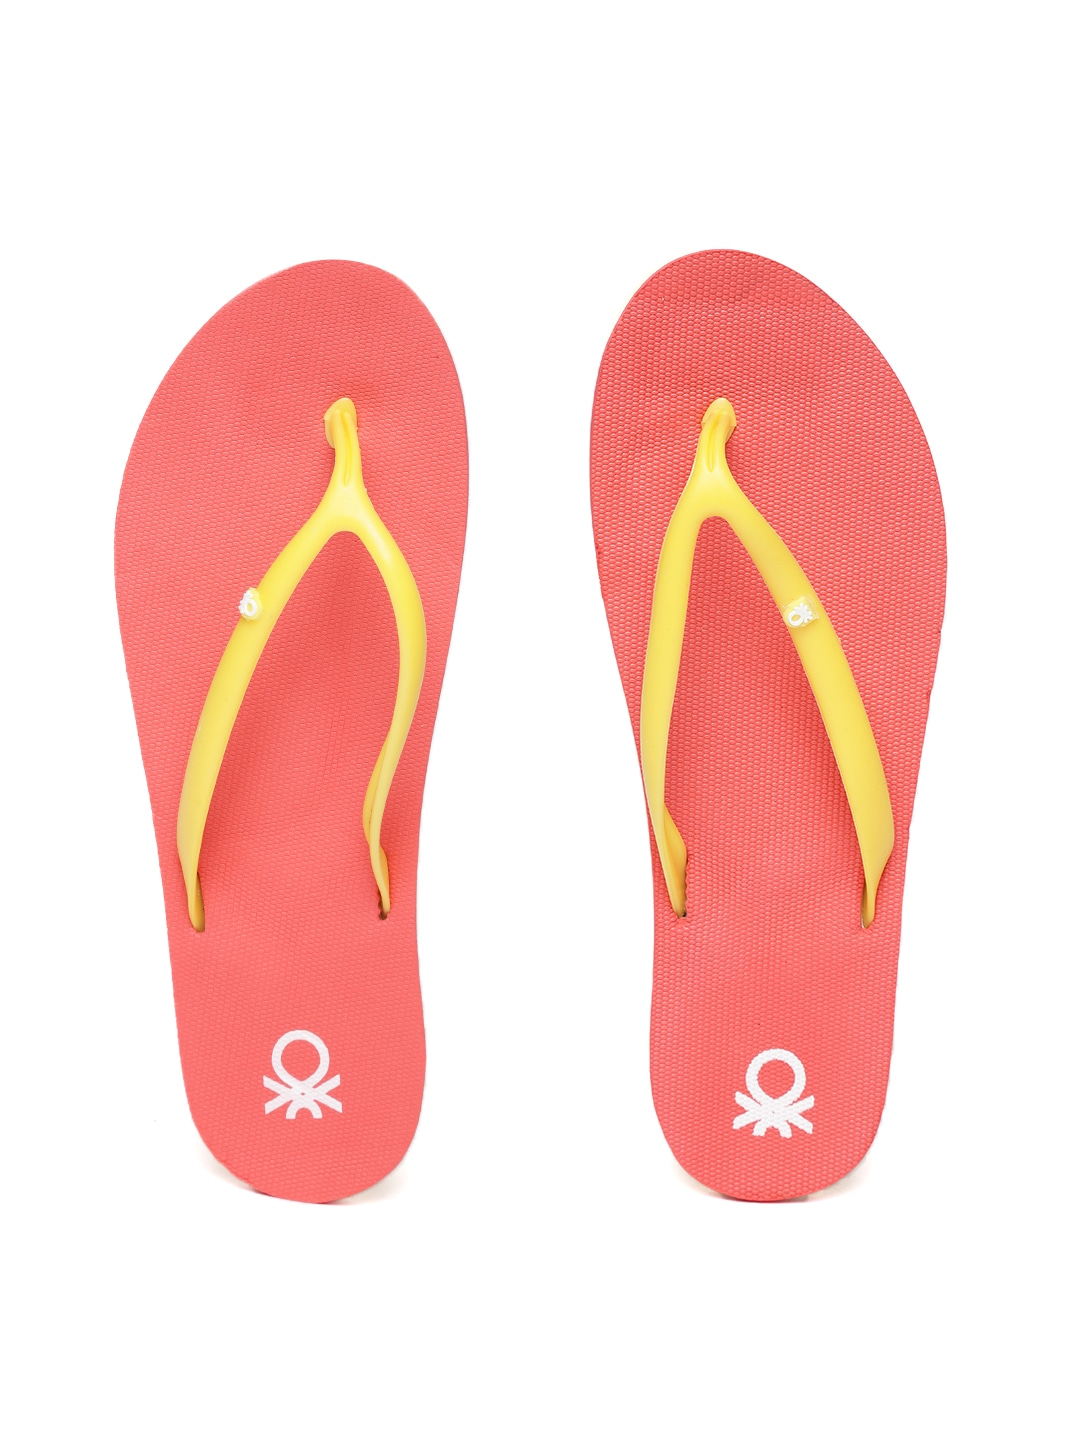 48108c5d7fd8 Women Footwear - Buy Footwear for Women   Girls Online